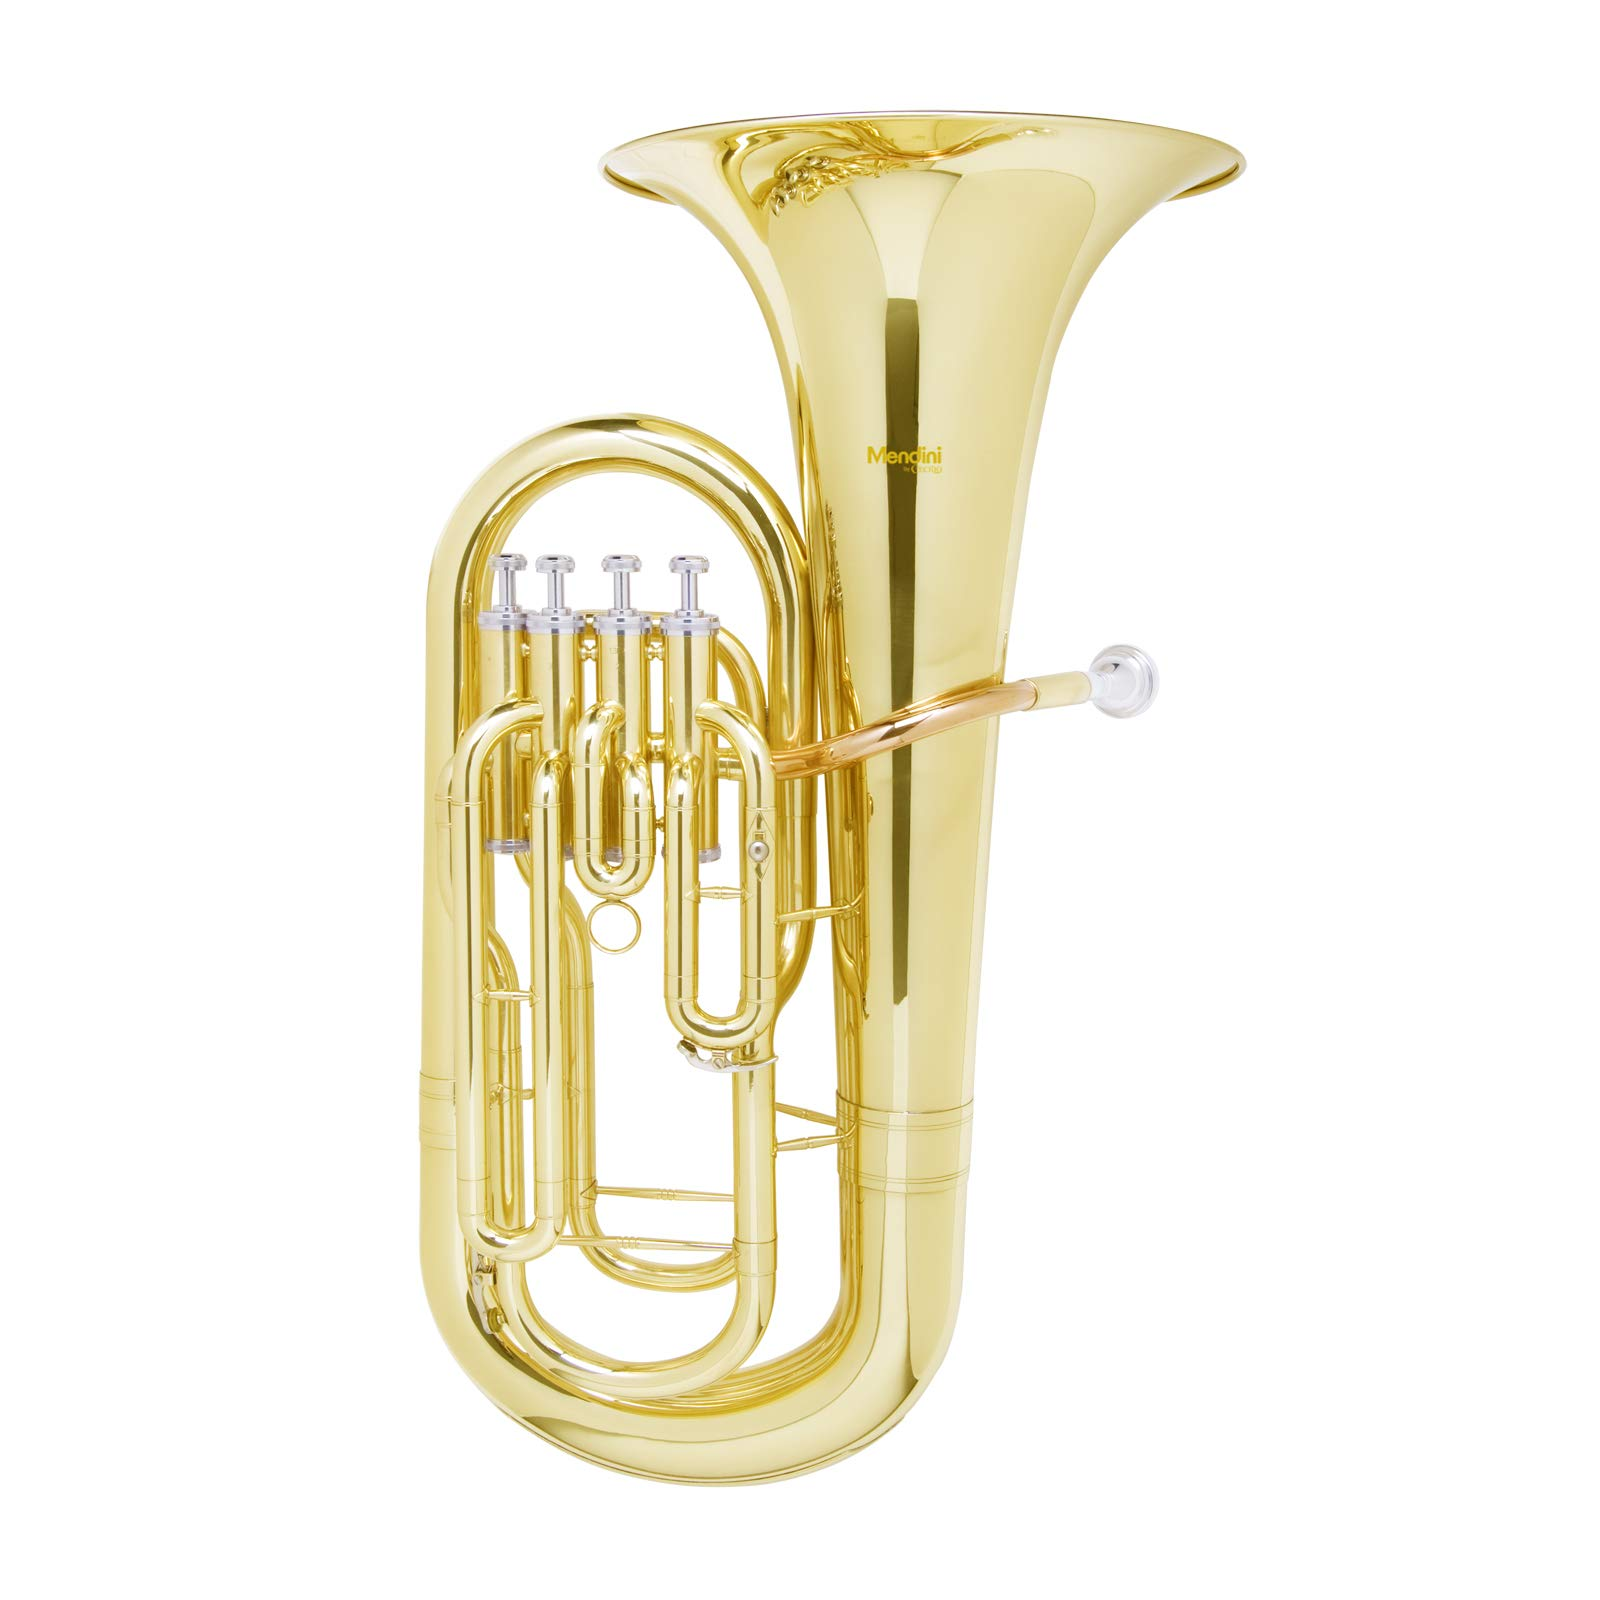 Mendini MEP-L Lacquer Brass B Flat Euphonium with Stainless Steel Pistons, Gold by Mendini by Cecilio